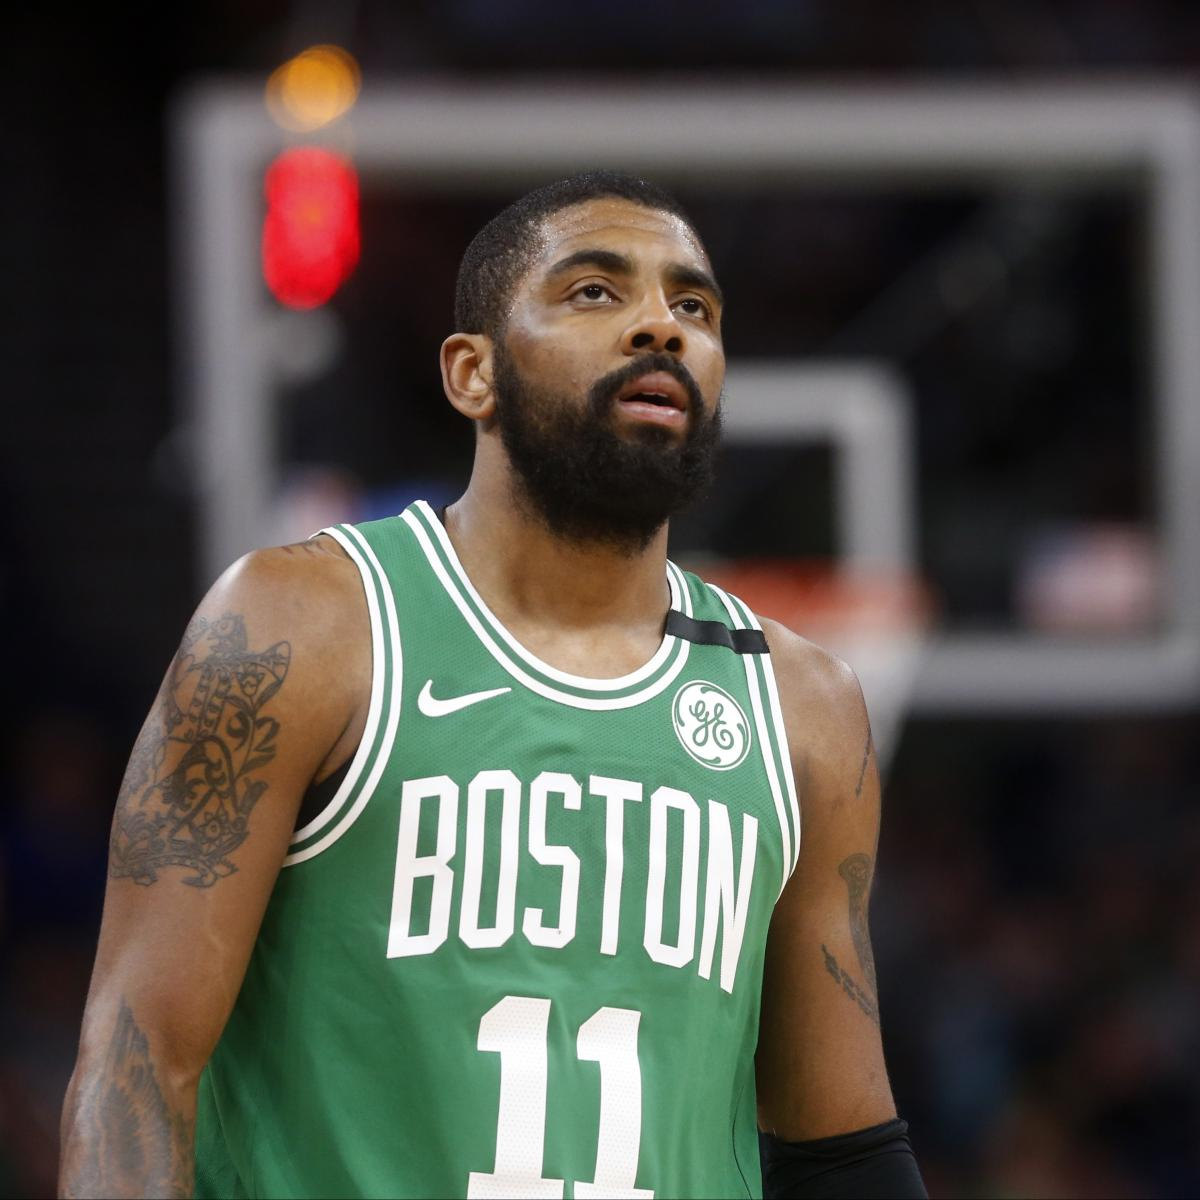 Cavaliers Trade Rumors: Cleveland to Let $3M from Kyrie Irving Deal Expire